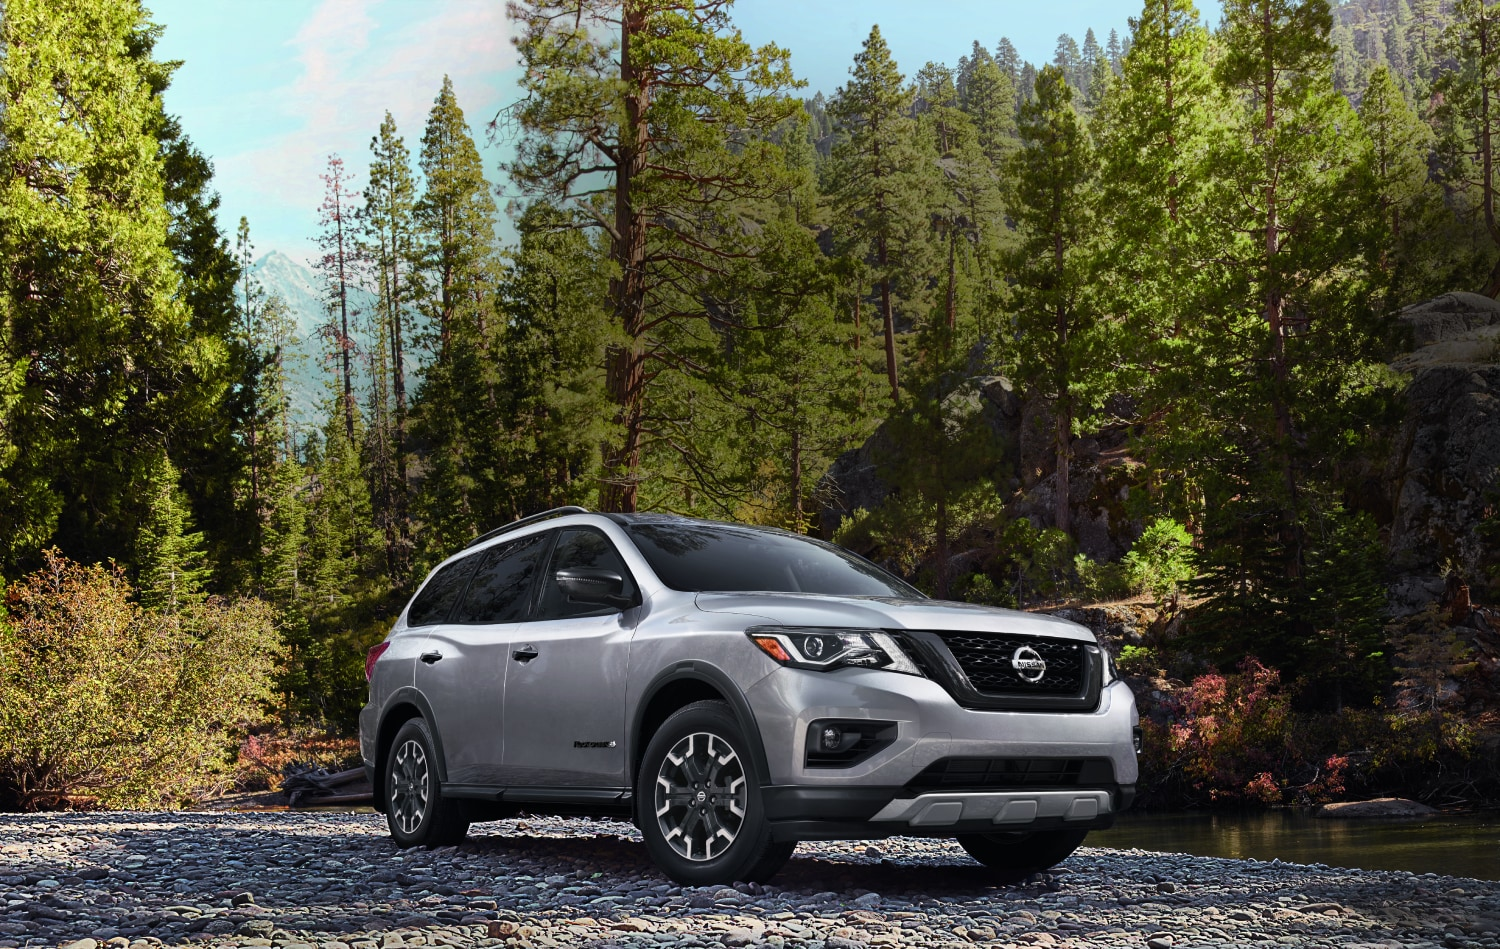 2020 Nissan Pathfinder Rock Creek Edition in Fall Background